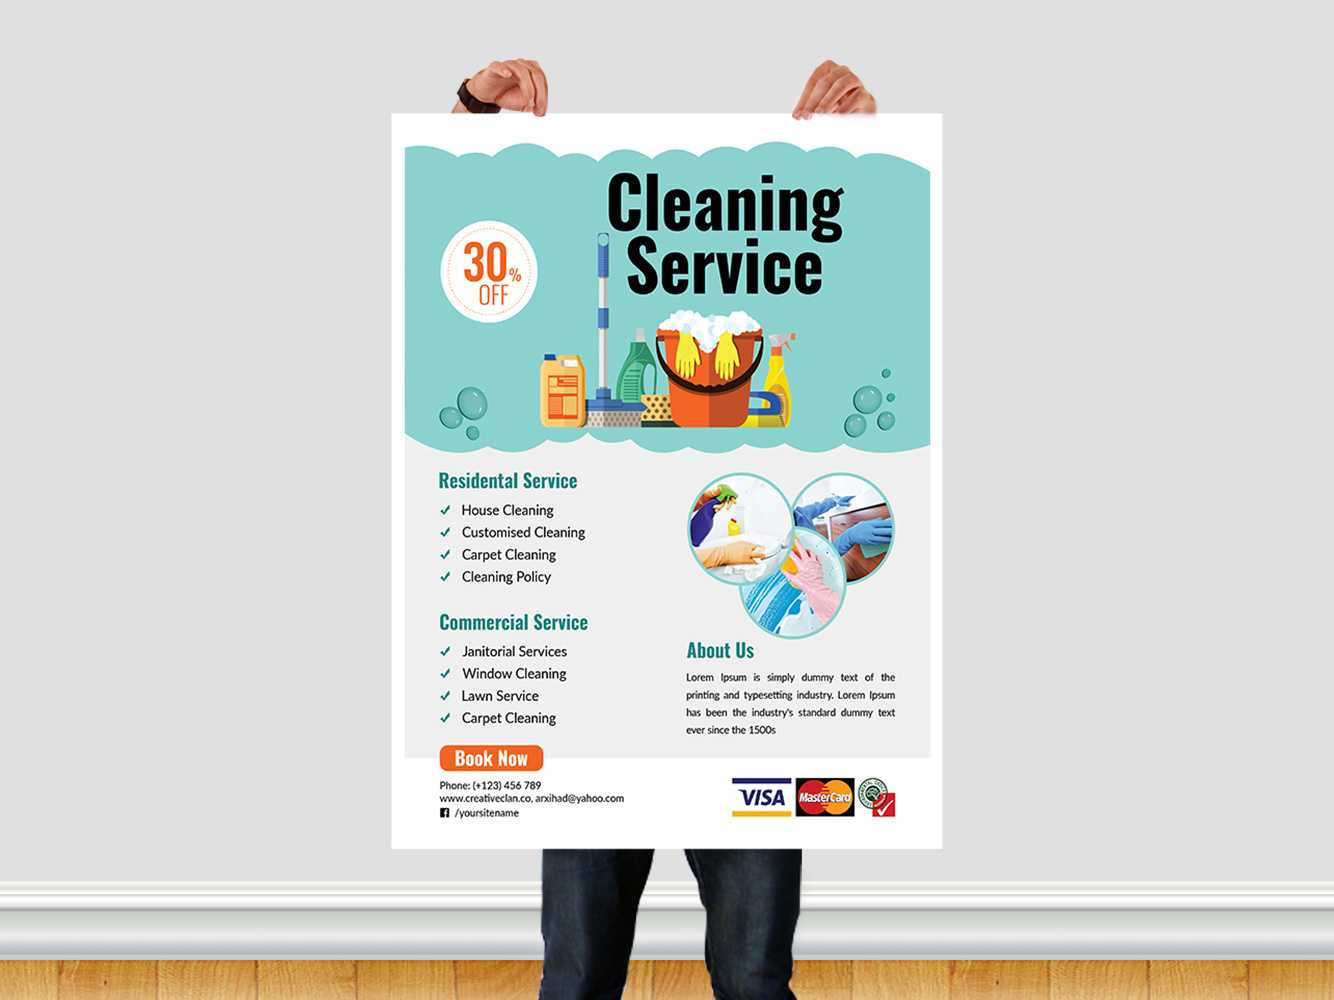 Cleaning Service Flyer Templatear Xihad On Dribbble Intended For Commercial Cleaning Brochure Templates